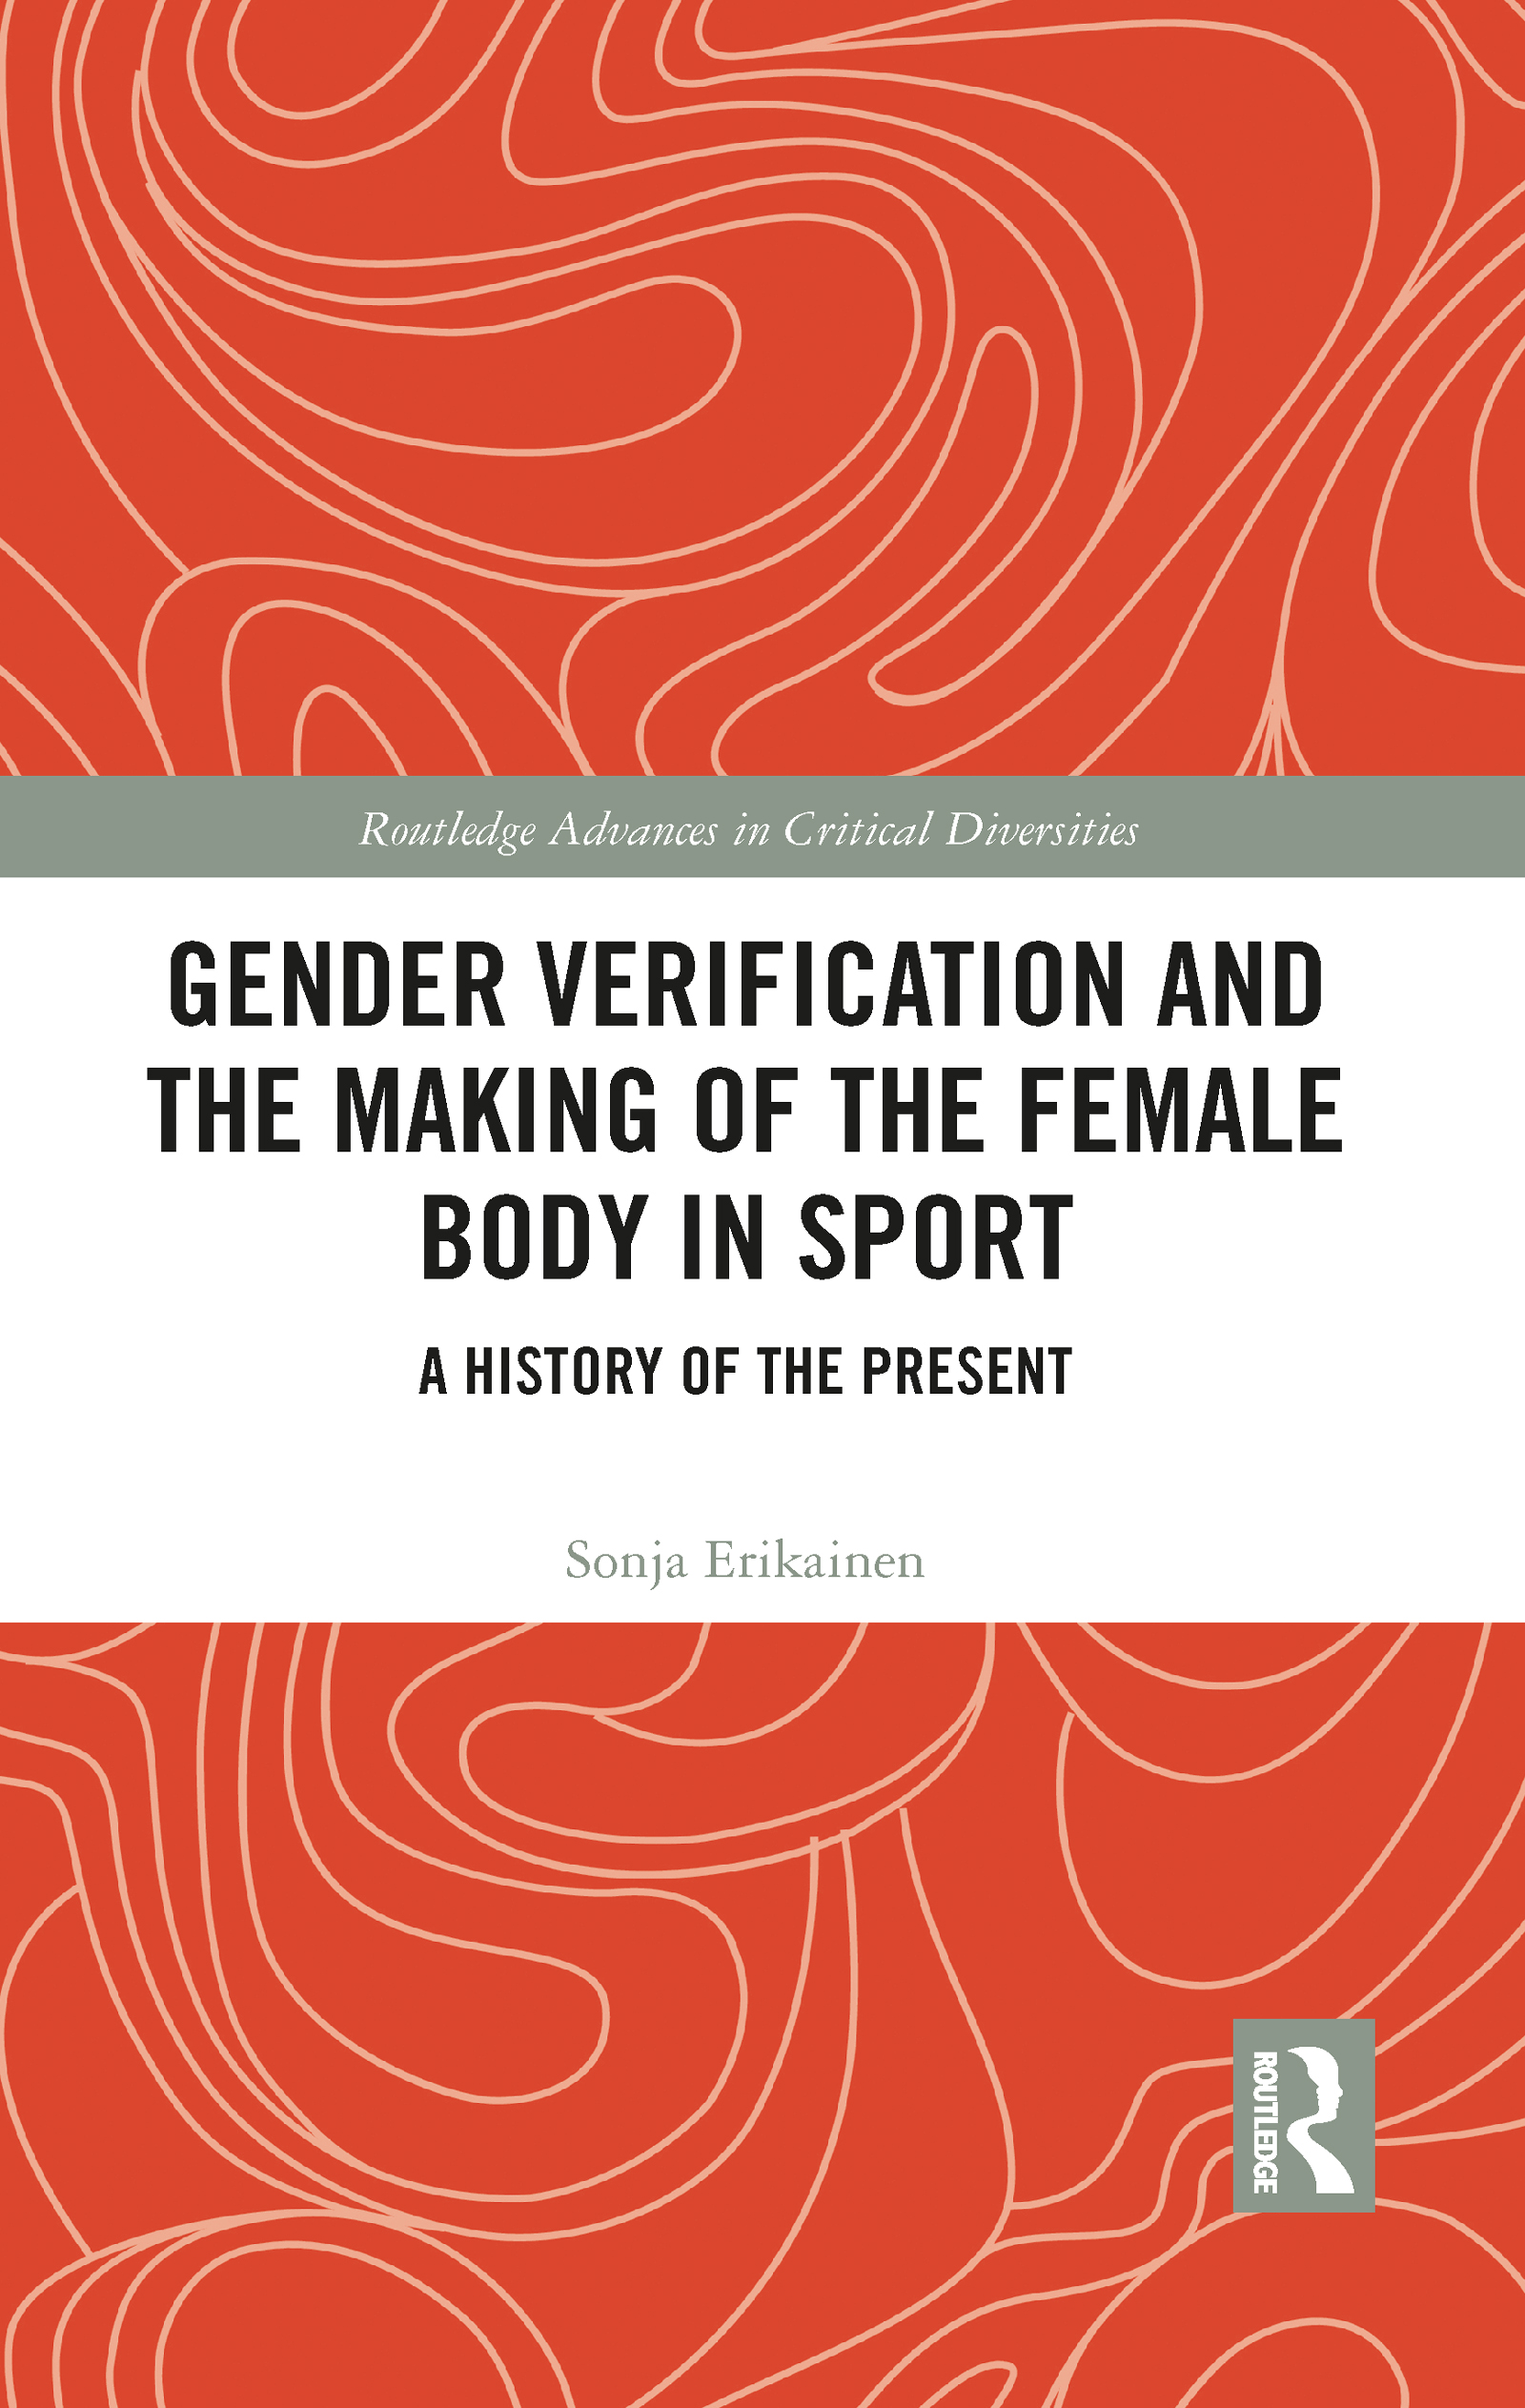 Gender Verification and the Making of the Female Body in Sport